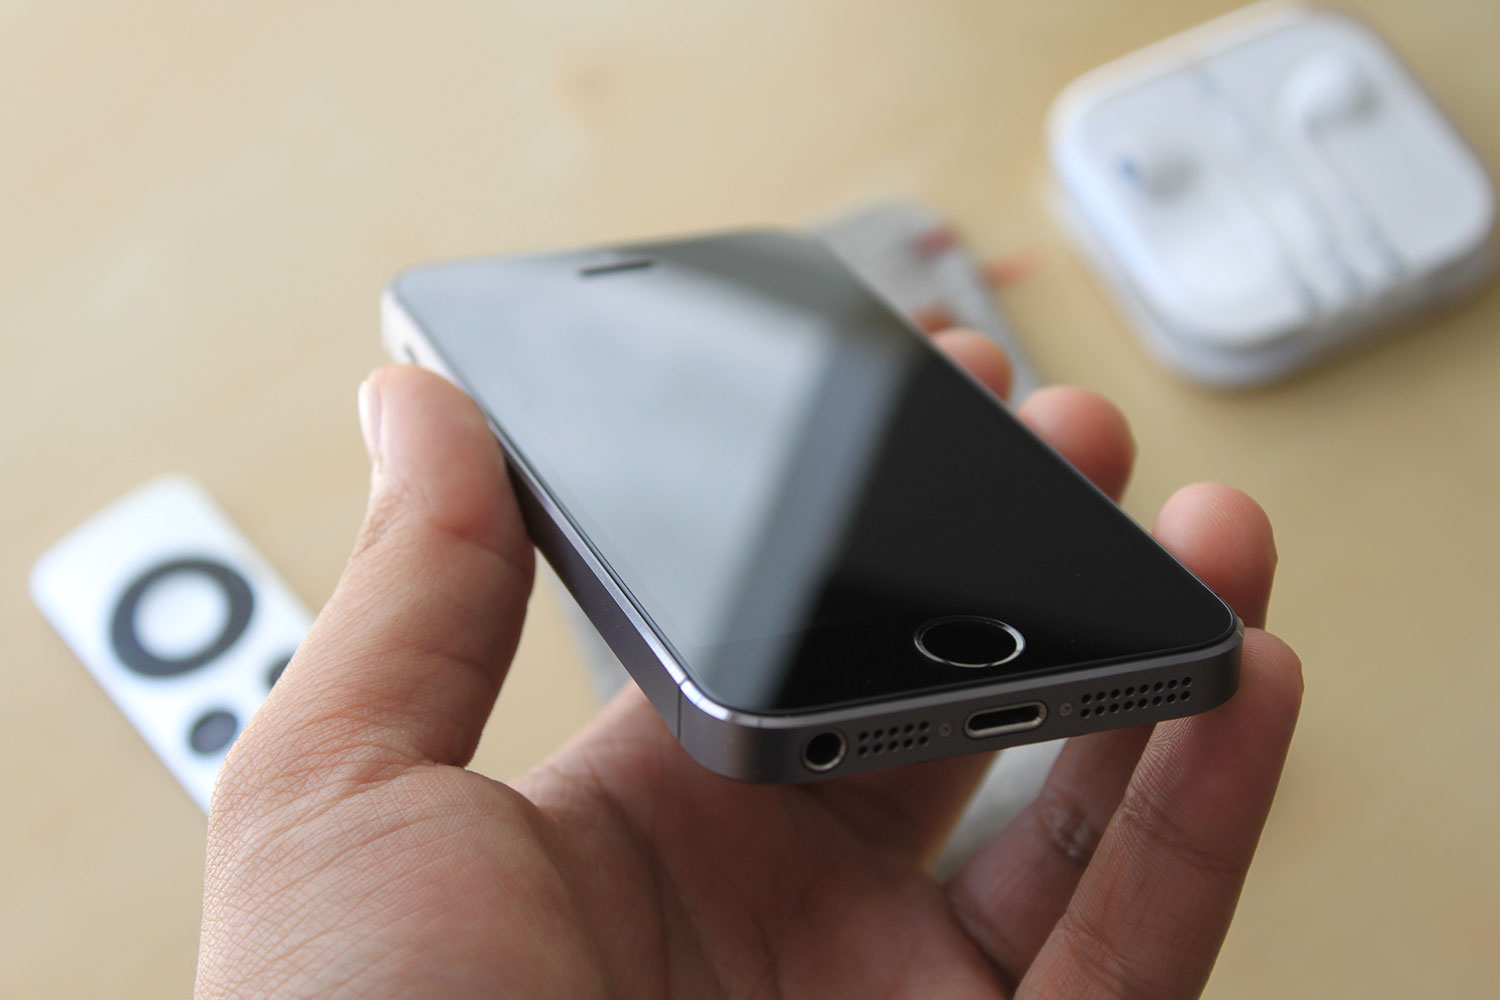 Ap apple iphone 5s space gray 32gb - The Iphone 5s